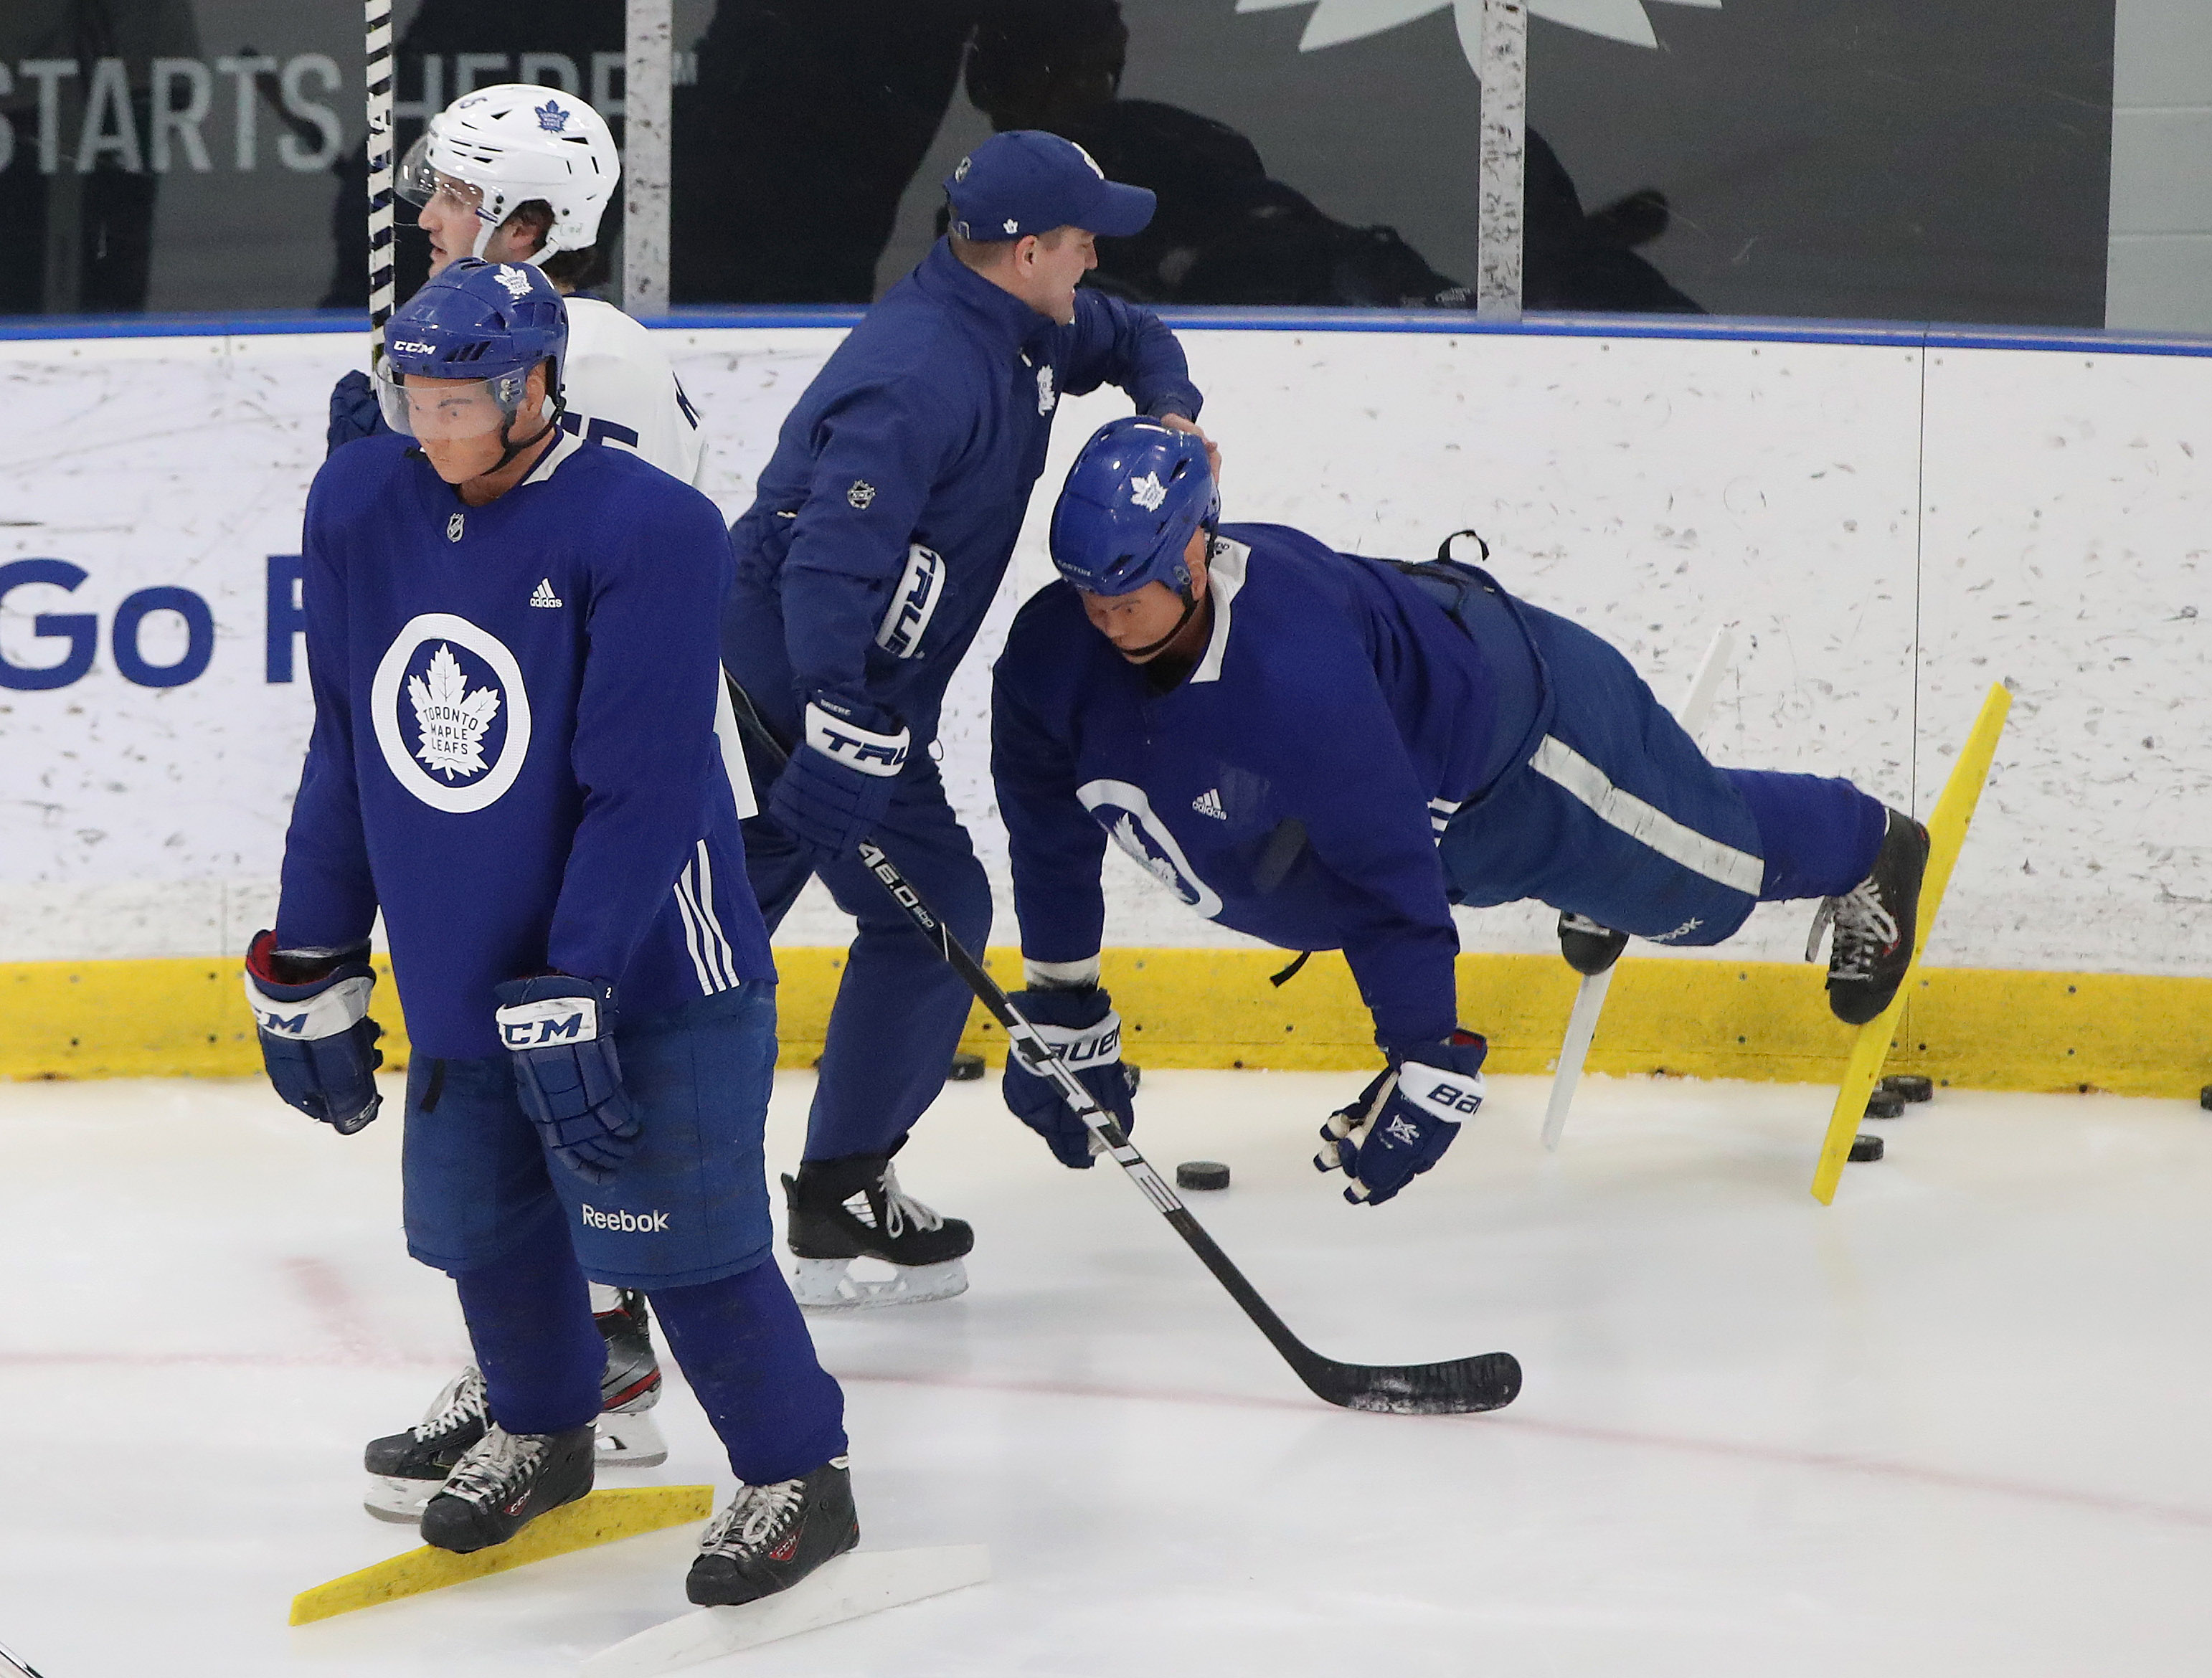 the Toronto Maple Leafs host their mentors road trip